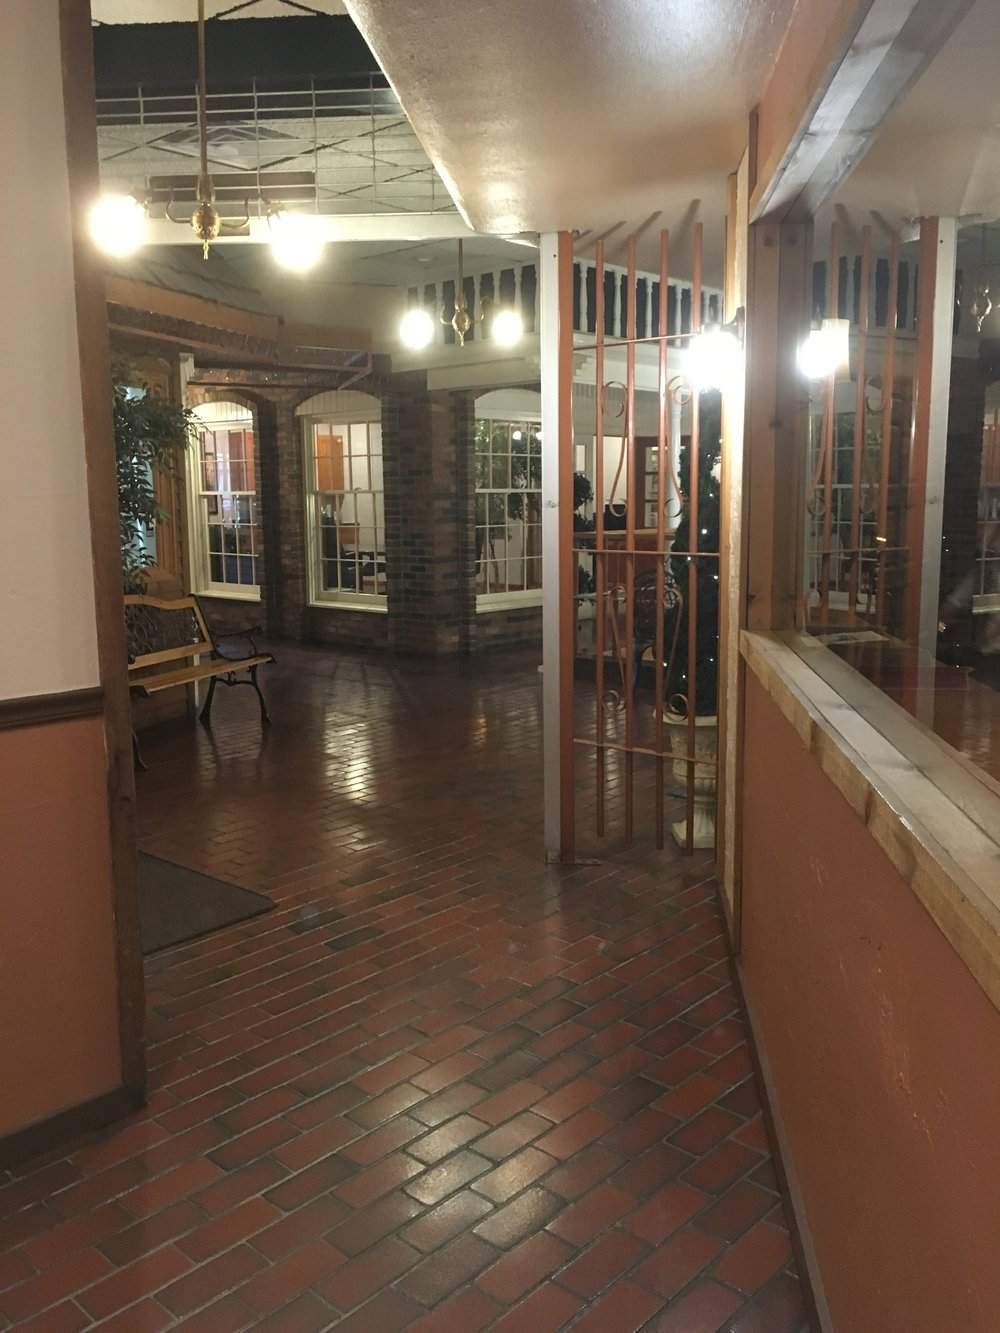 The rear entry way to the elevator...